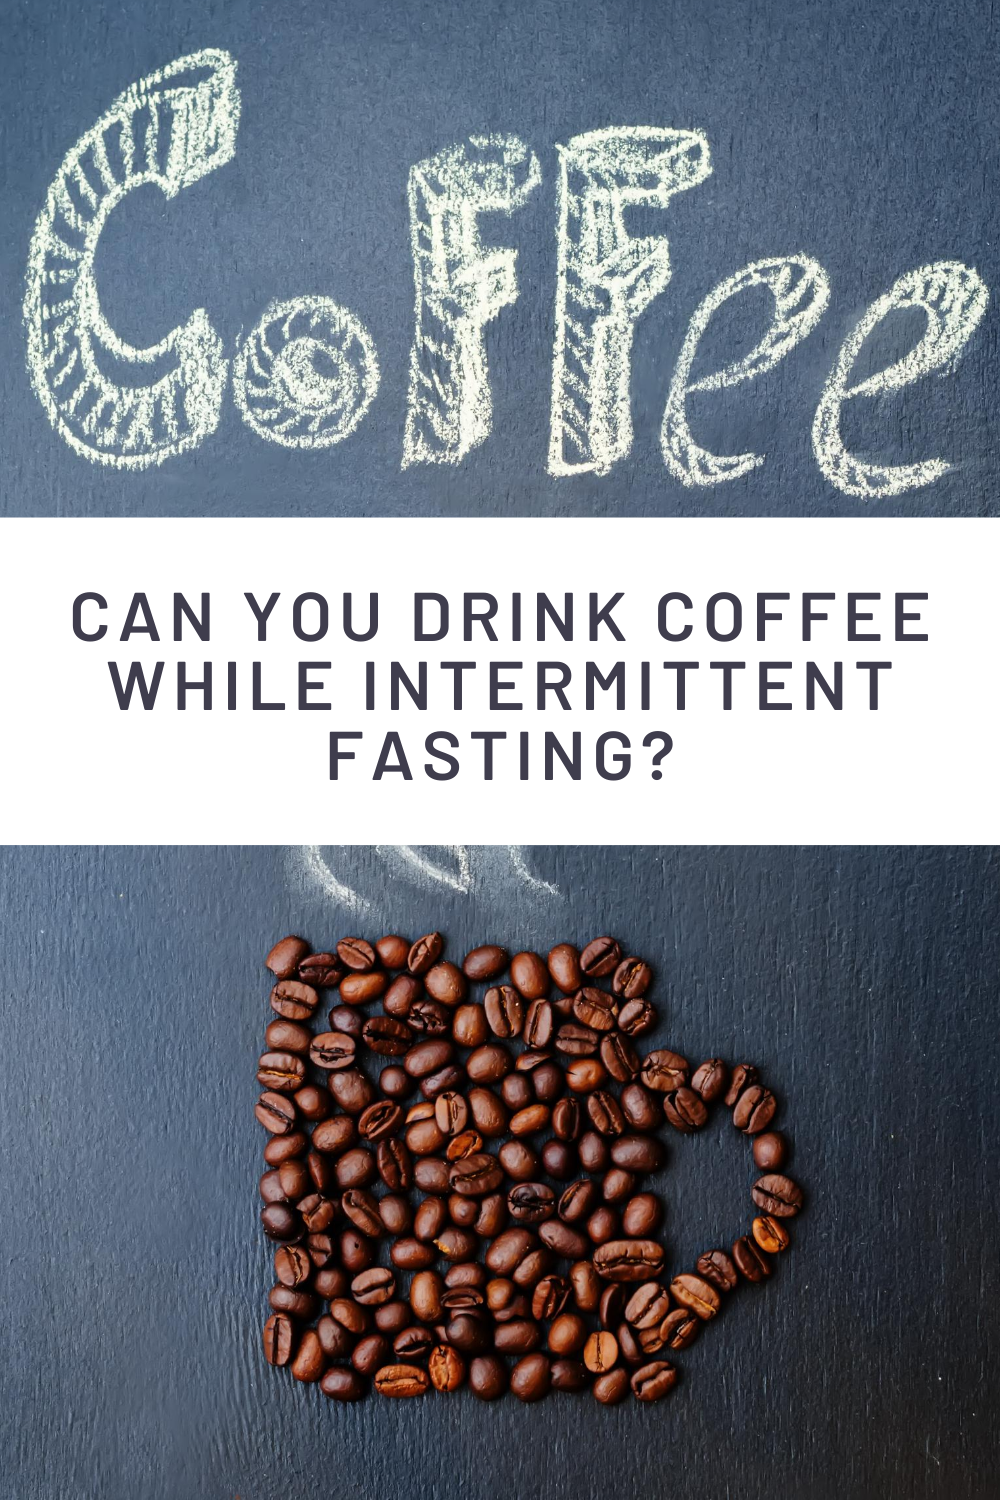 Can You Drink Coffee While Intermittent Fasting Coffee Drinks Coffee Health Benefits Coffee Benefits